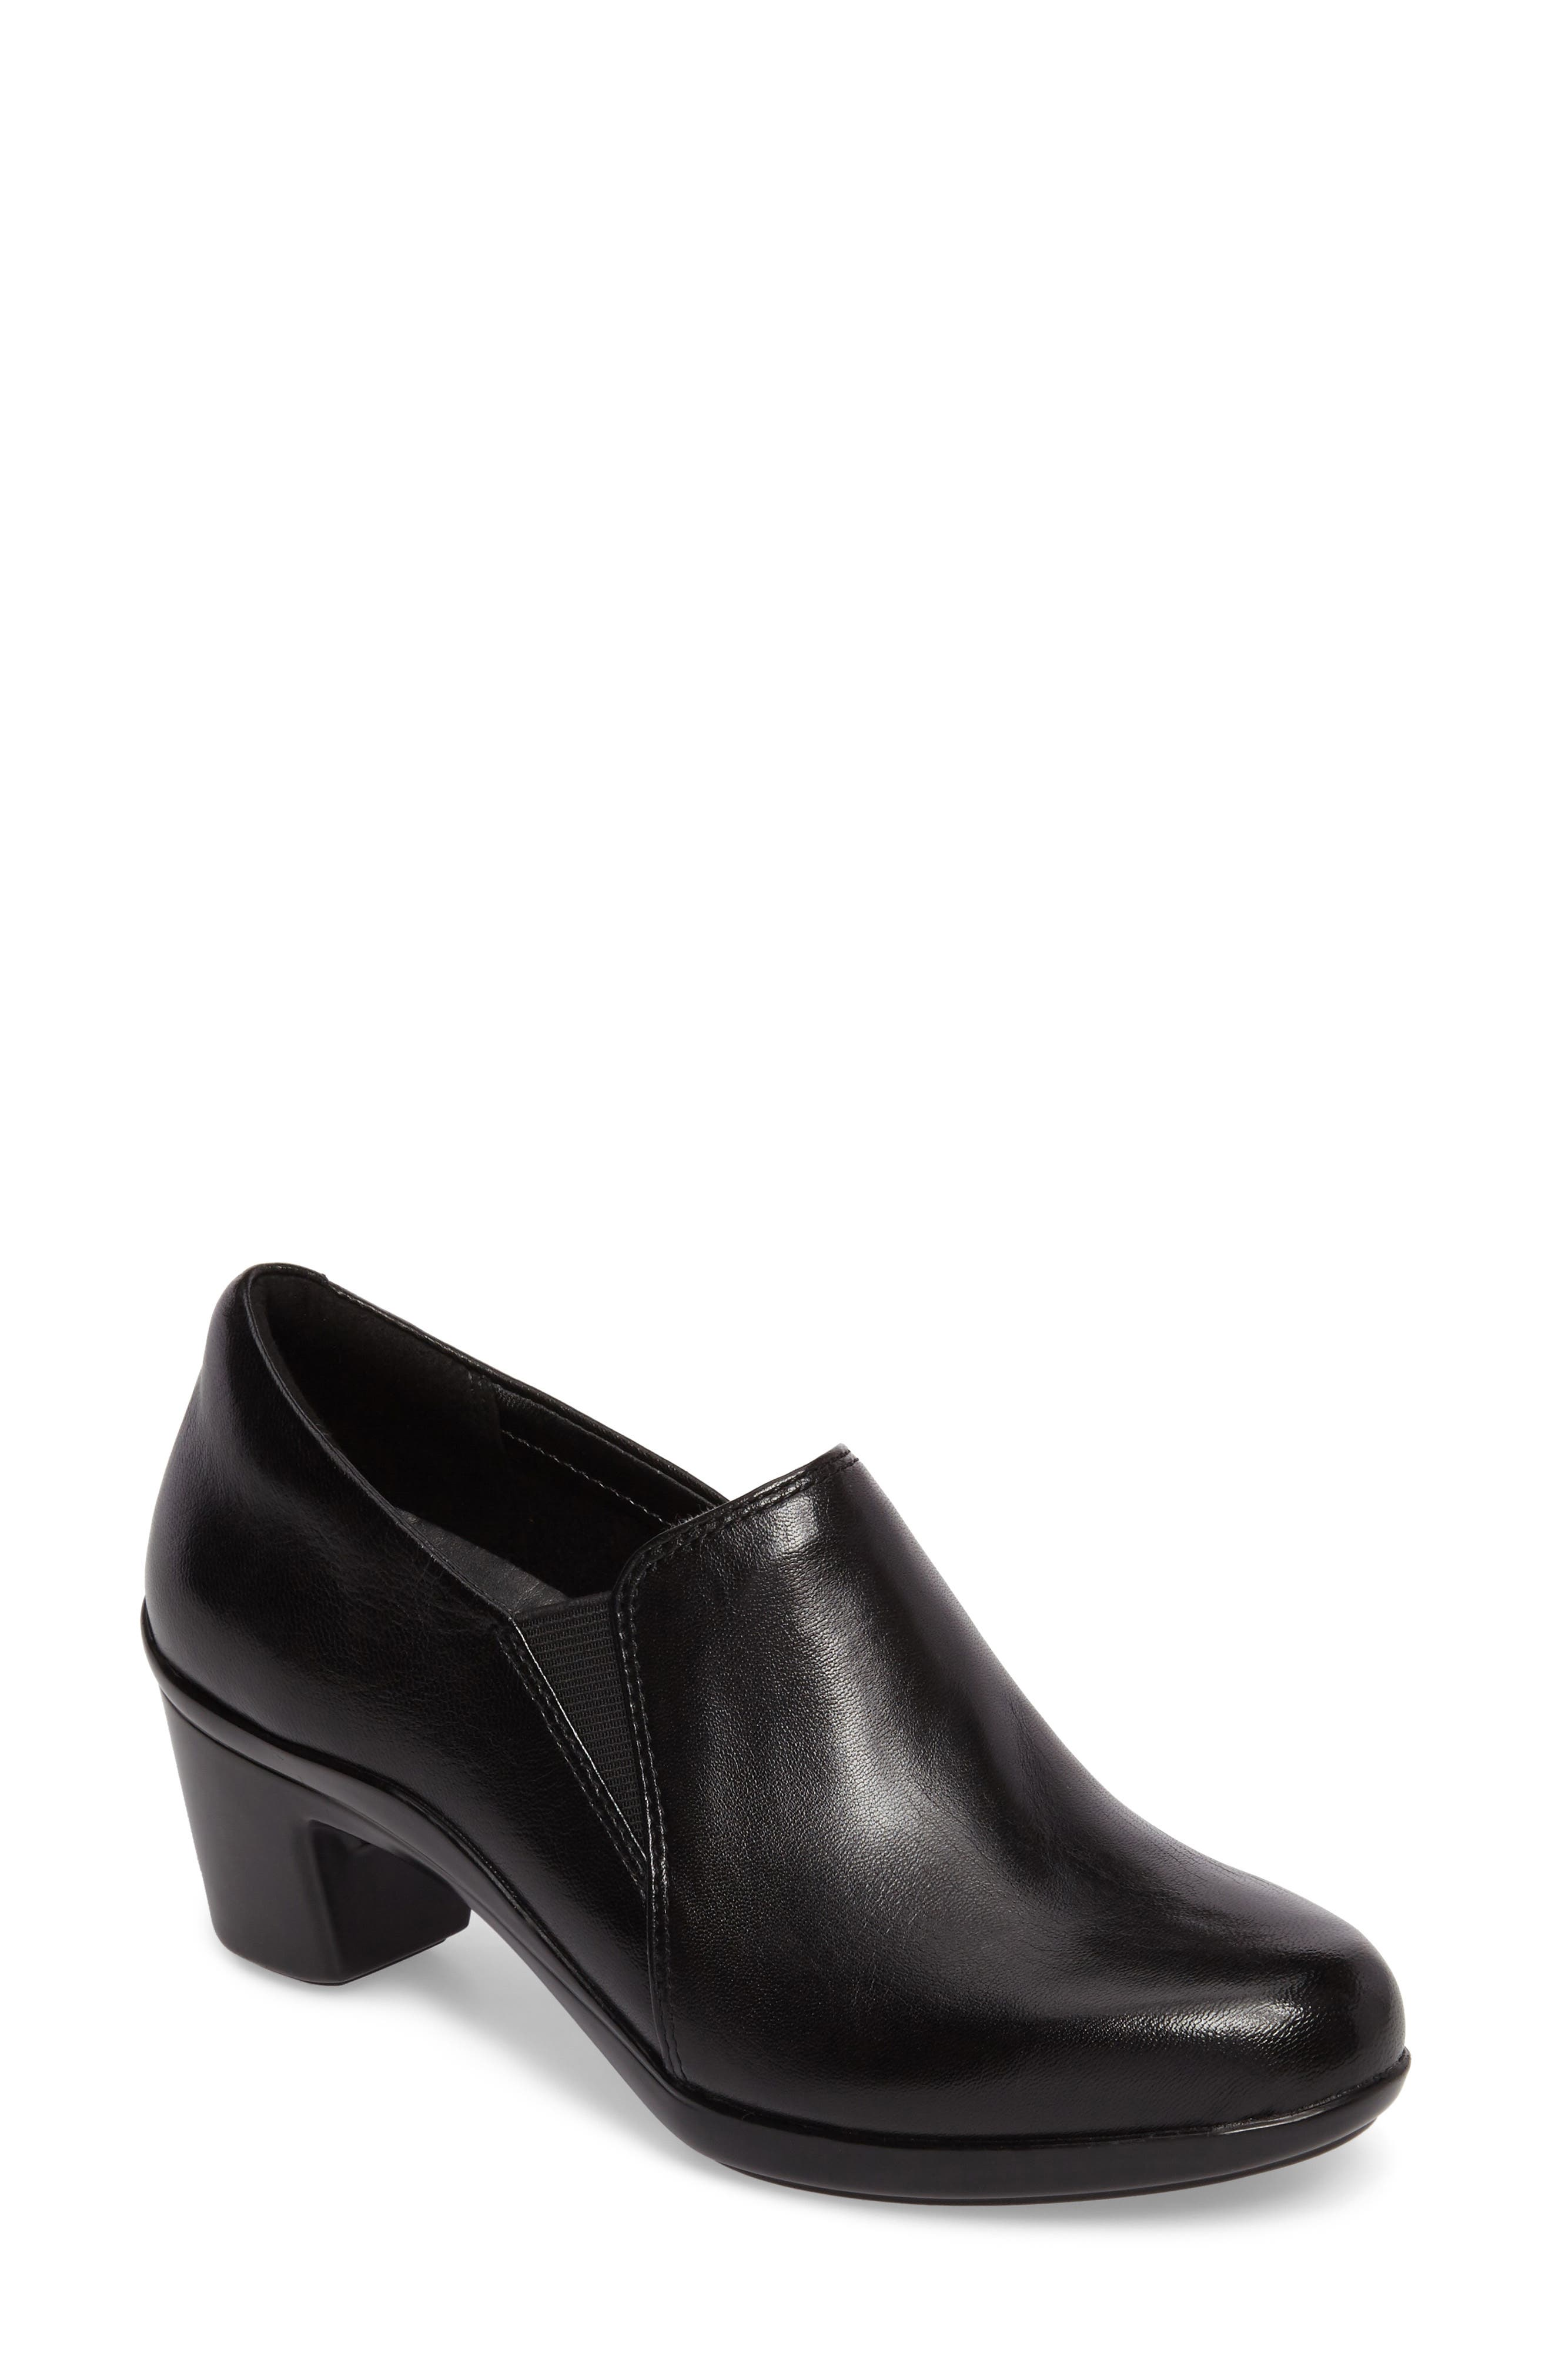 Lexee Bootie,                         Main,                         color, BLACK LEATHER